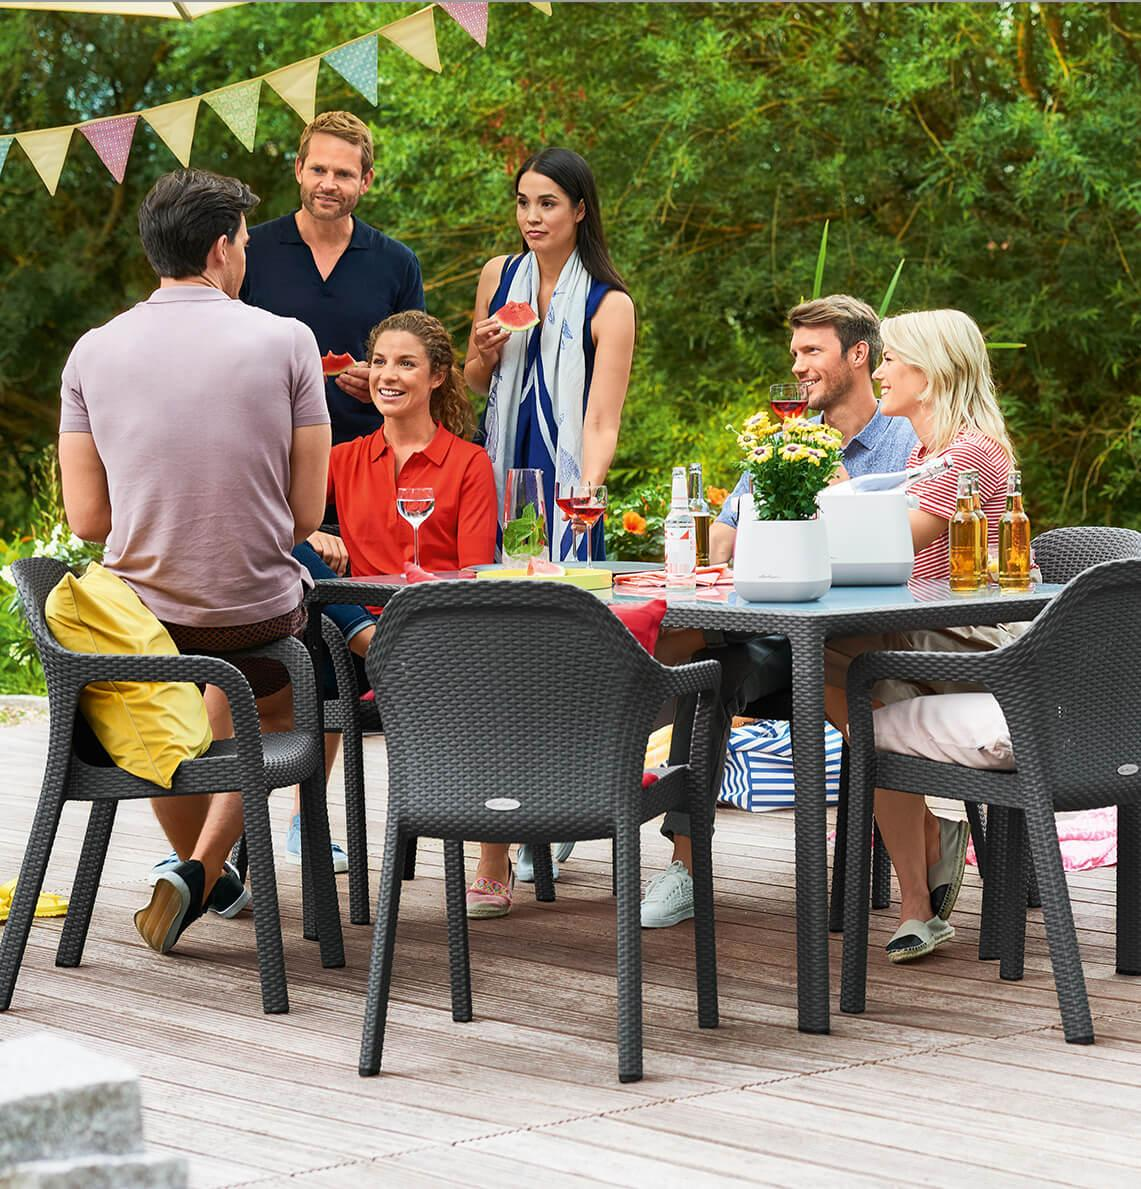 Celebrate in the garden and sit comfortably at a table.